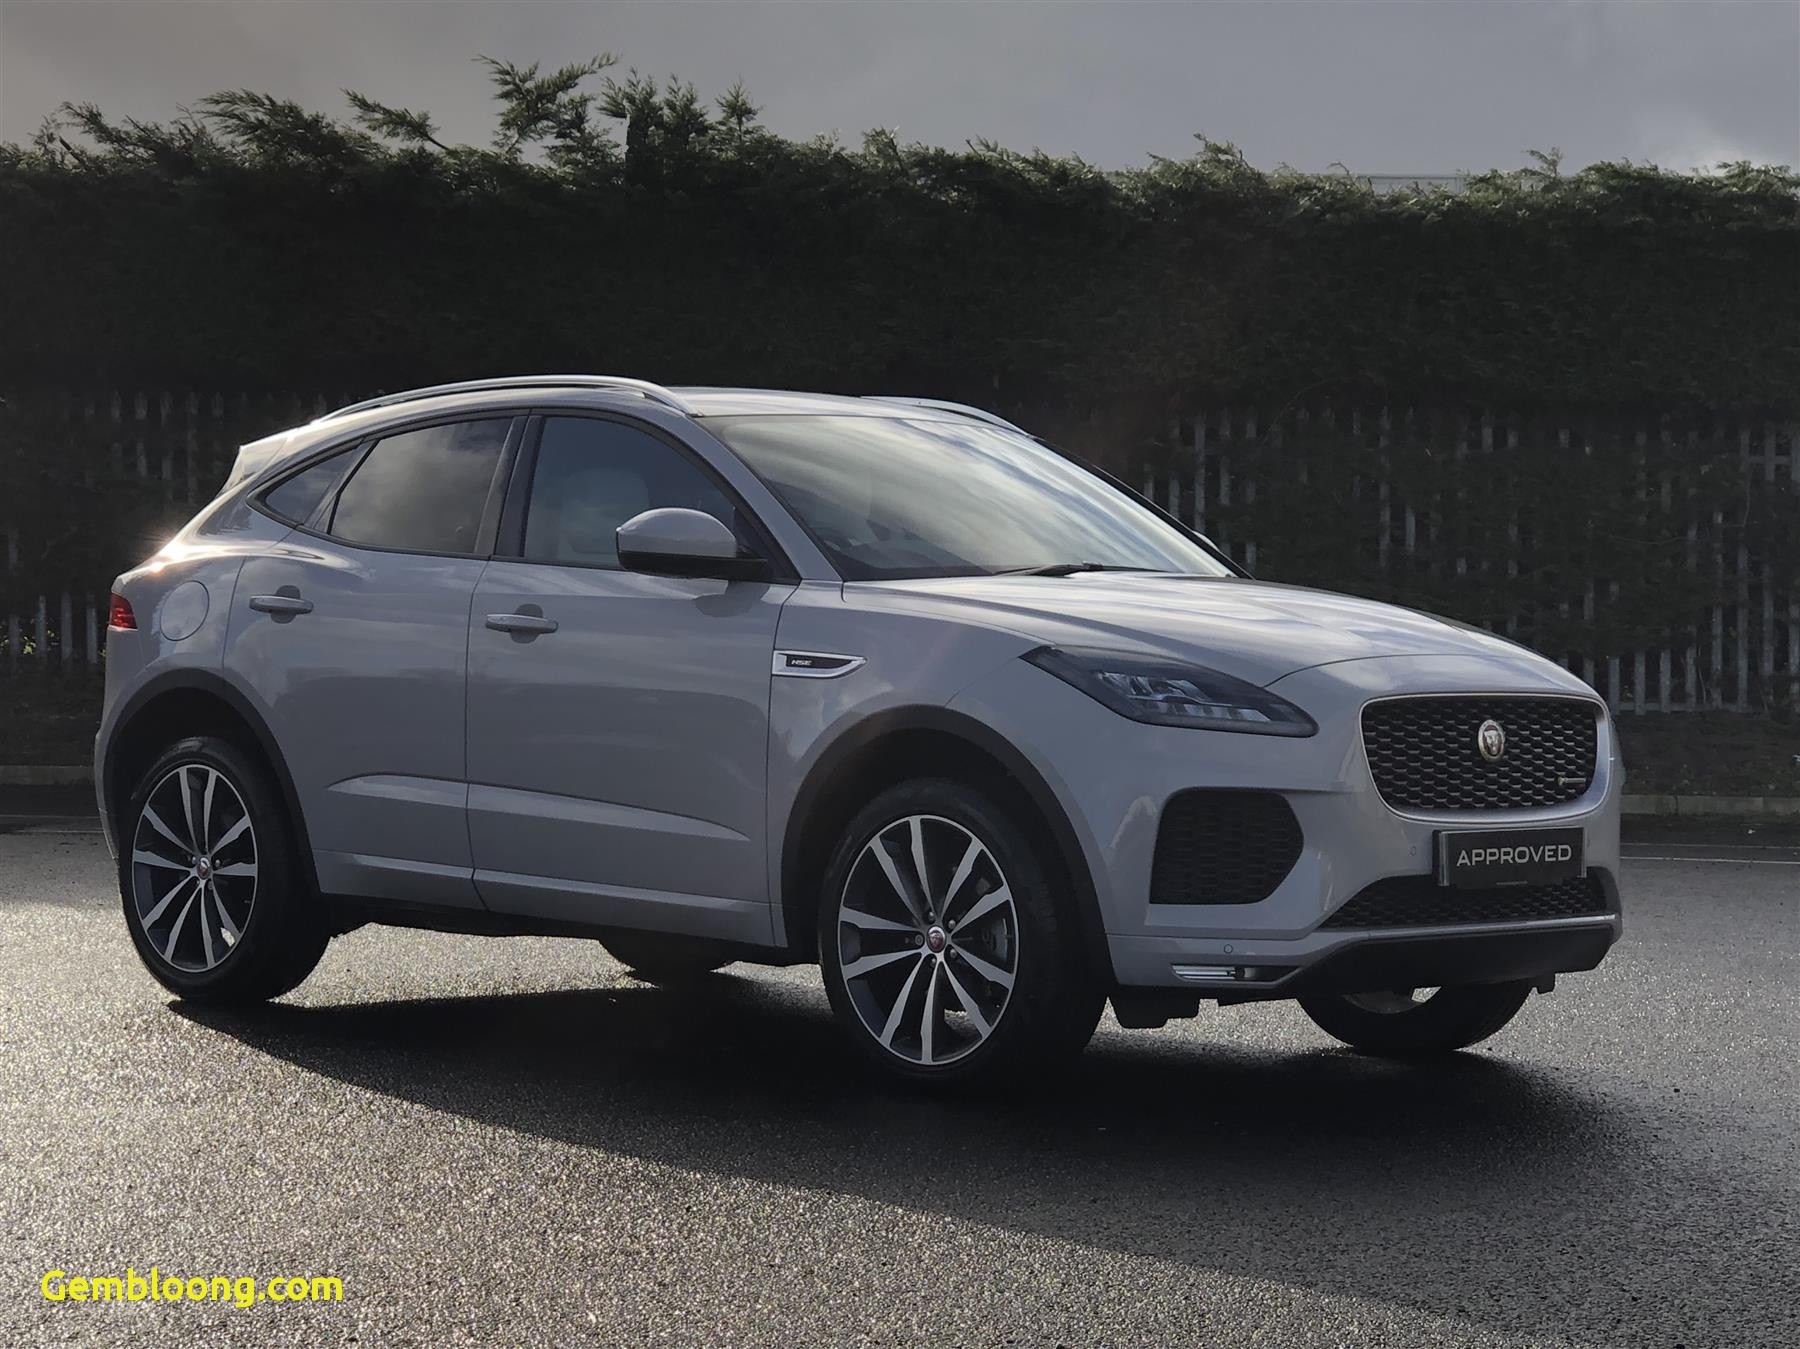 cars in sale near me inspirational used 2017 jaguar e pace 2 0d 180 r dynamic